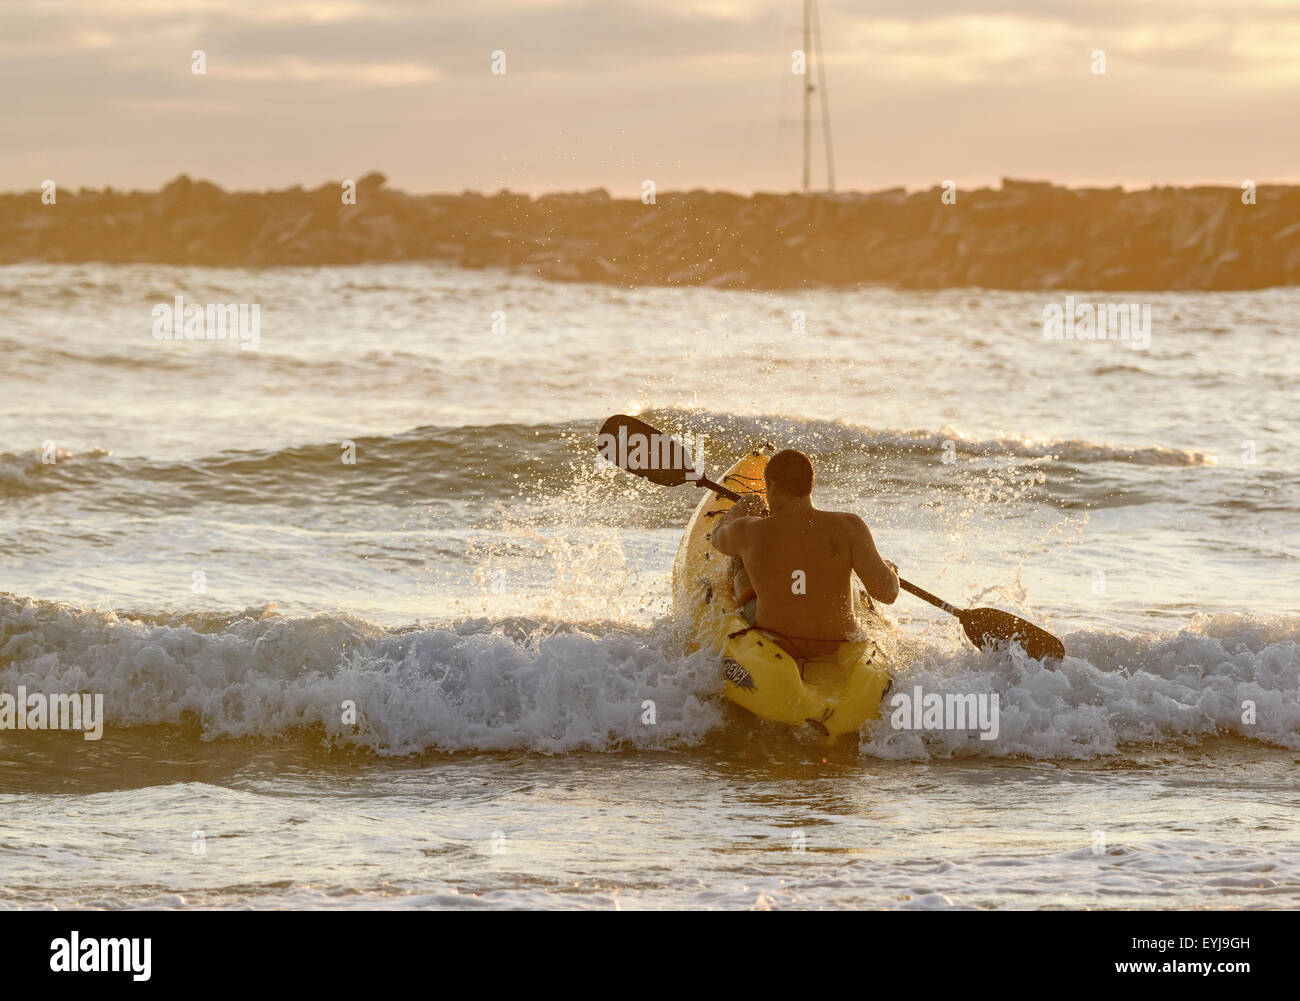 Man kayaking surf at Ocean Beach, CA - Stock Image